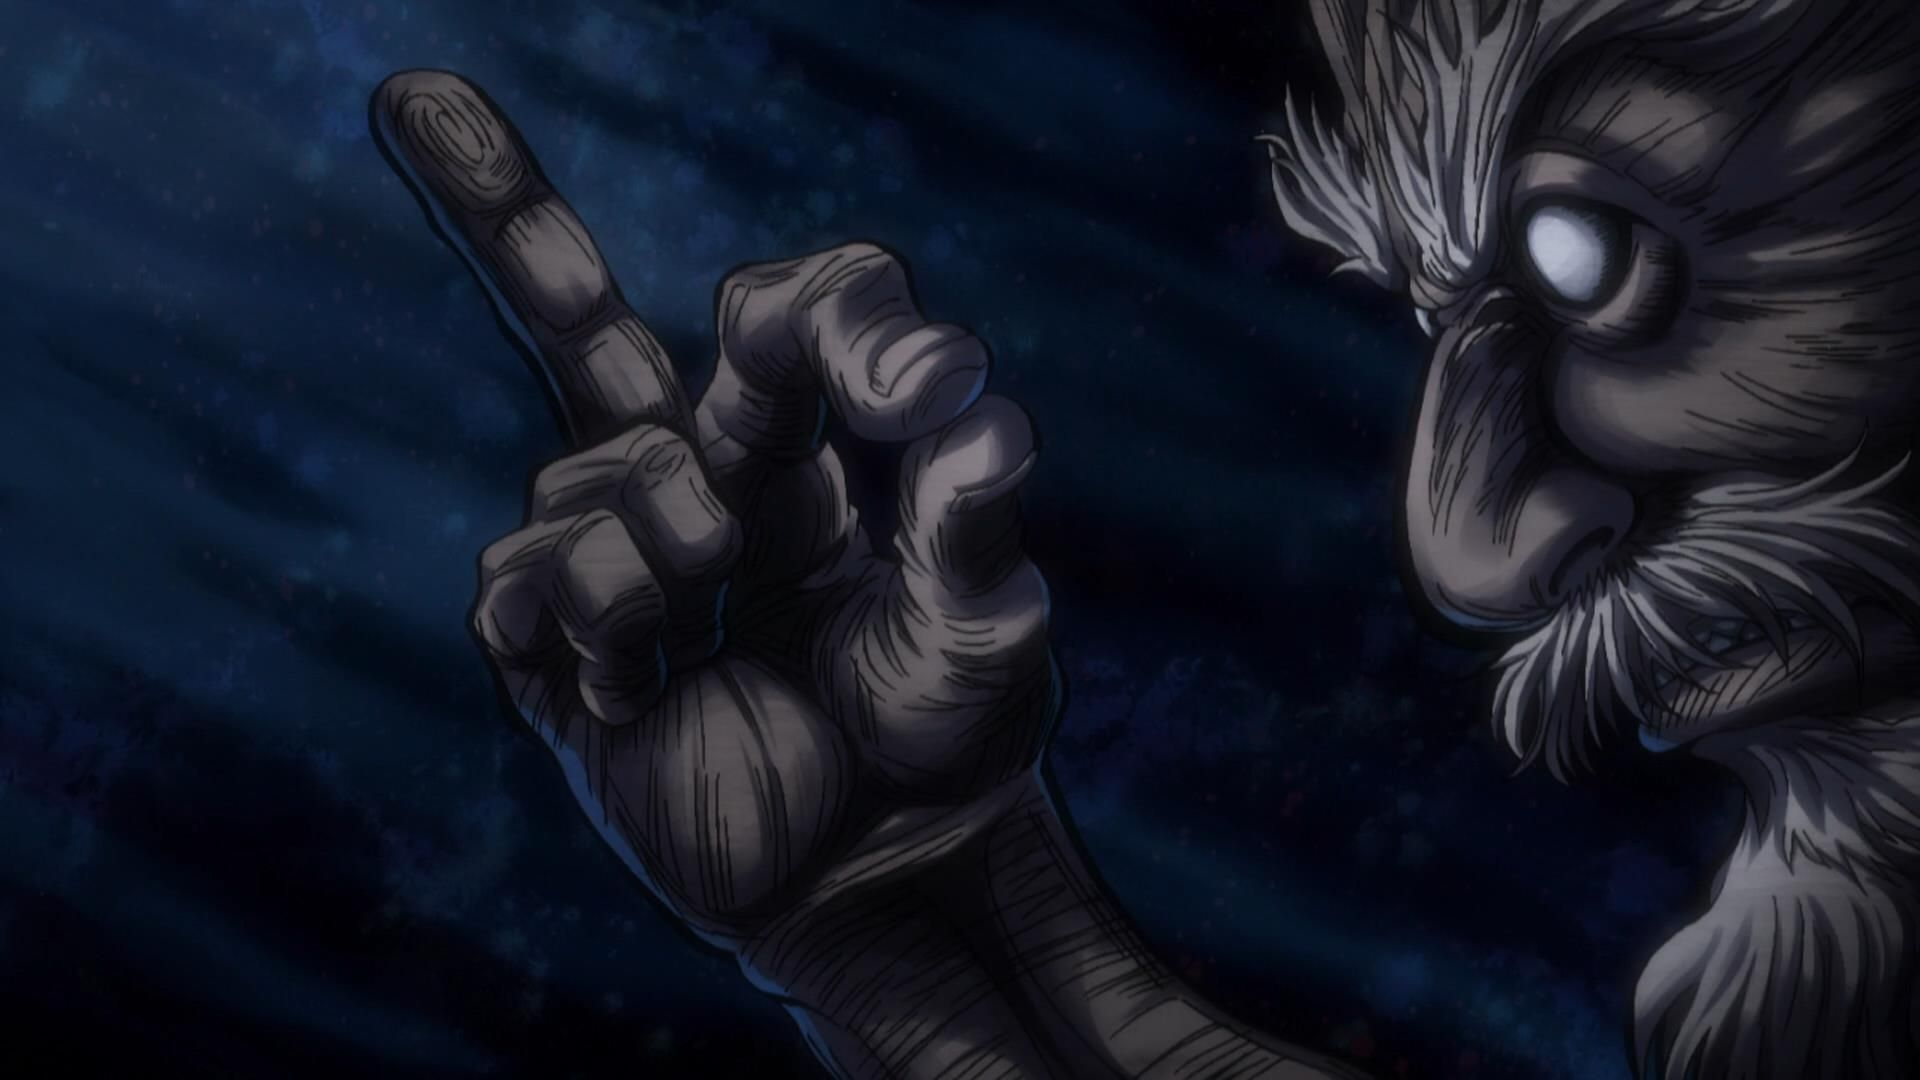 Anime 1920x1080 Hunter X Hunter Netero Isaac Demon Slayer Manga